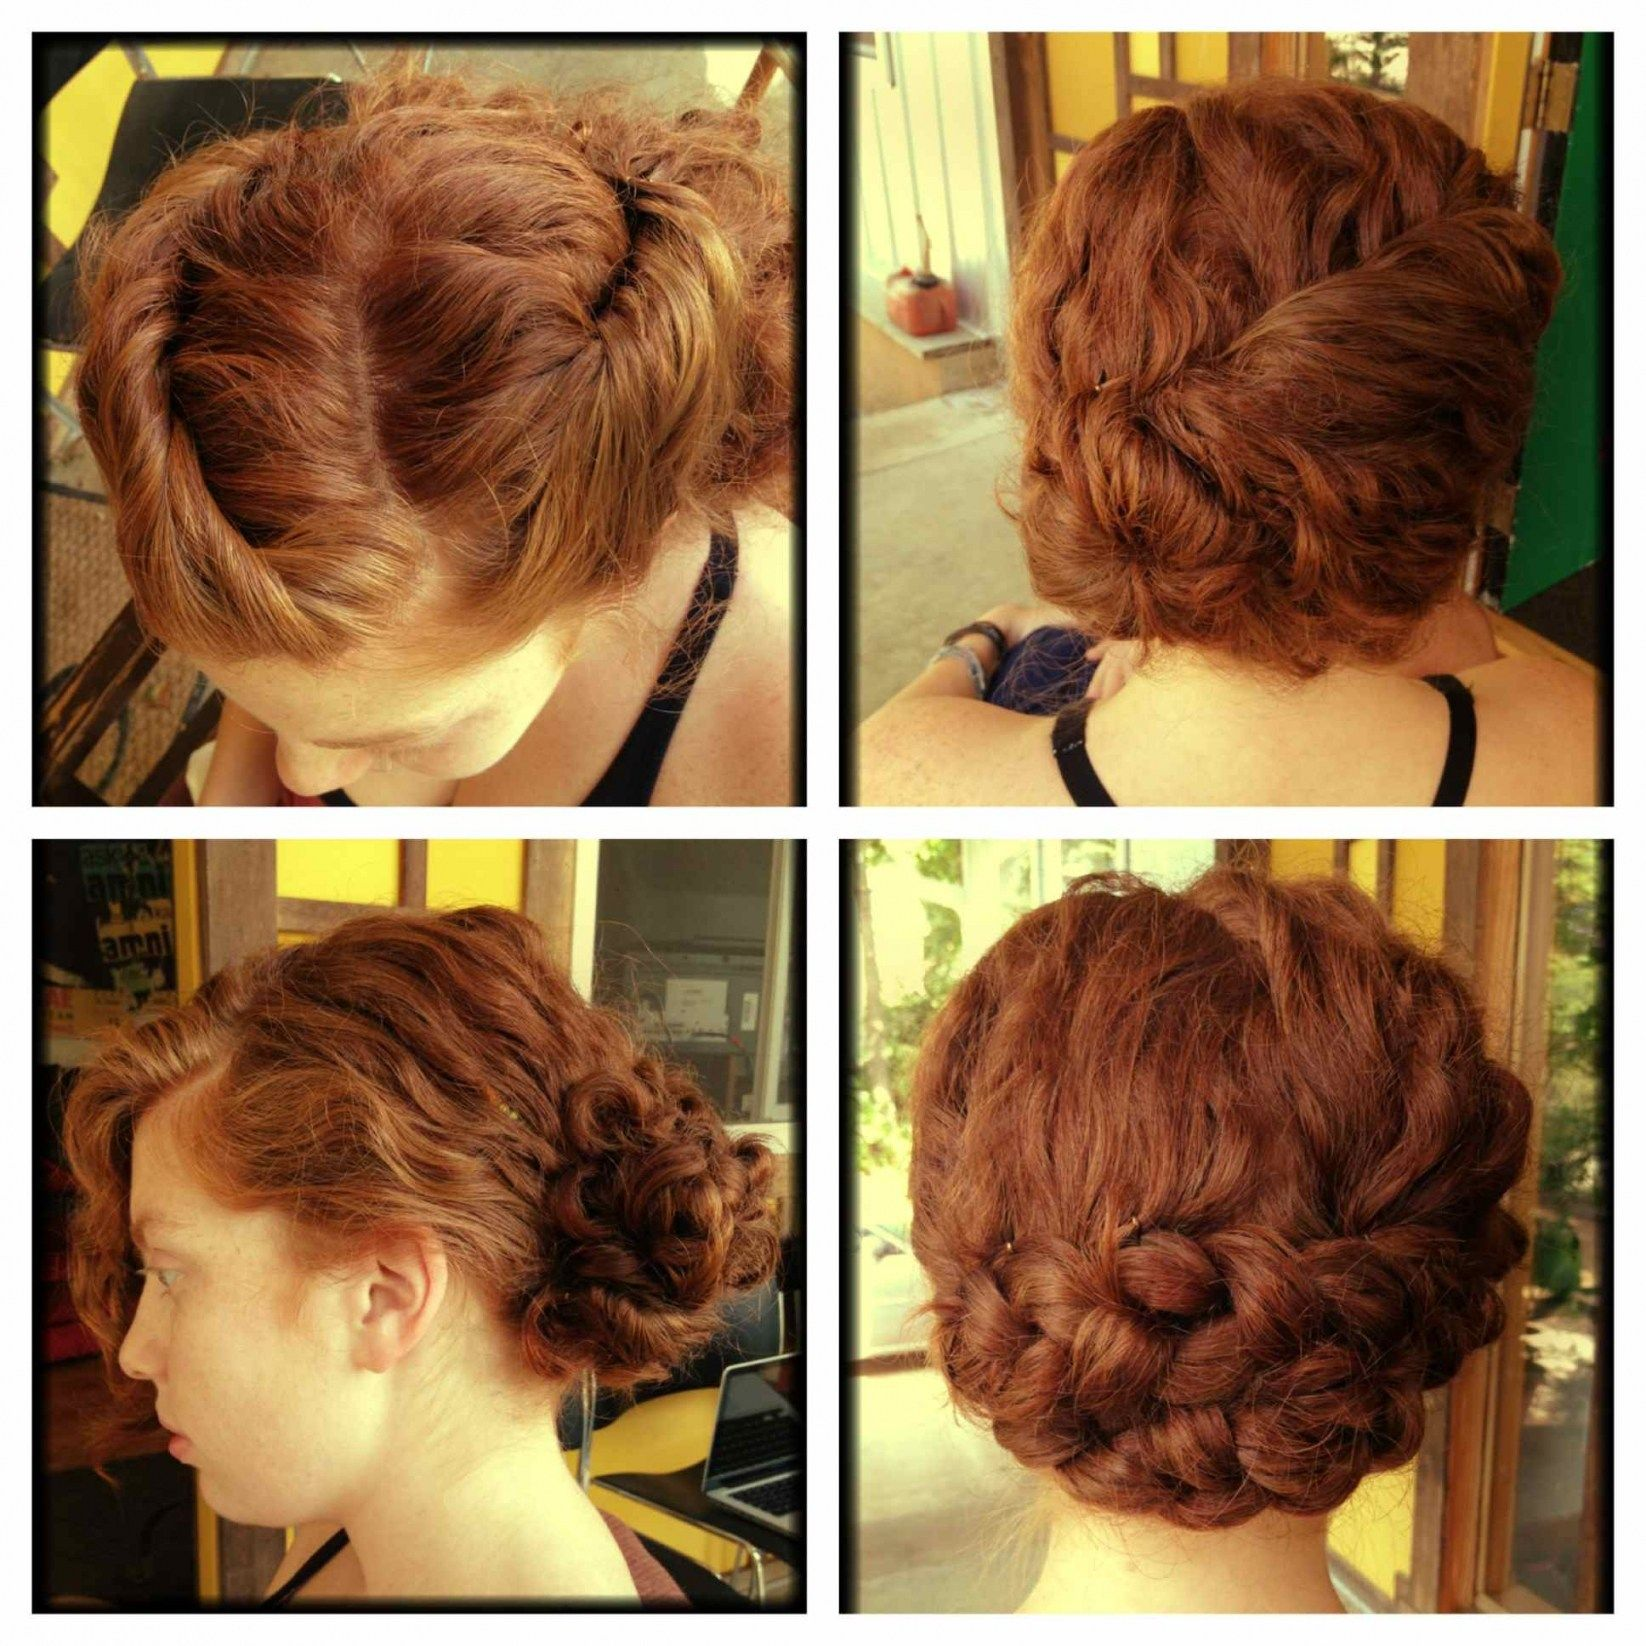 do it yourself wedding hairstyles for curly hair | hairstyles ideas